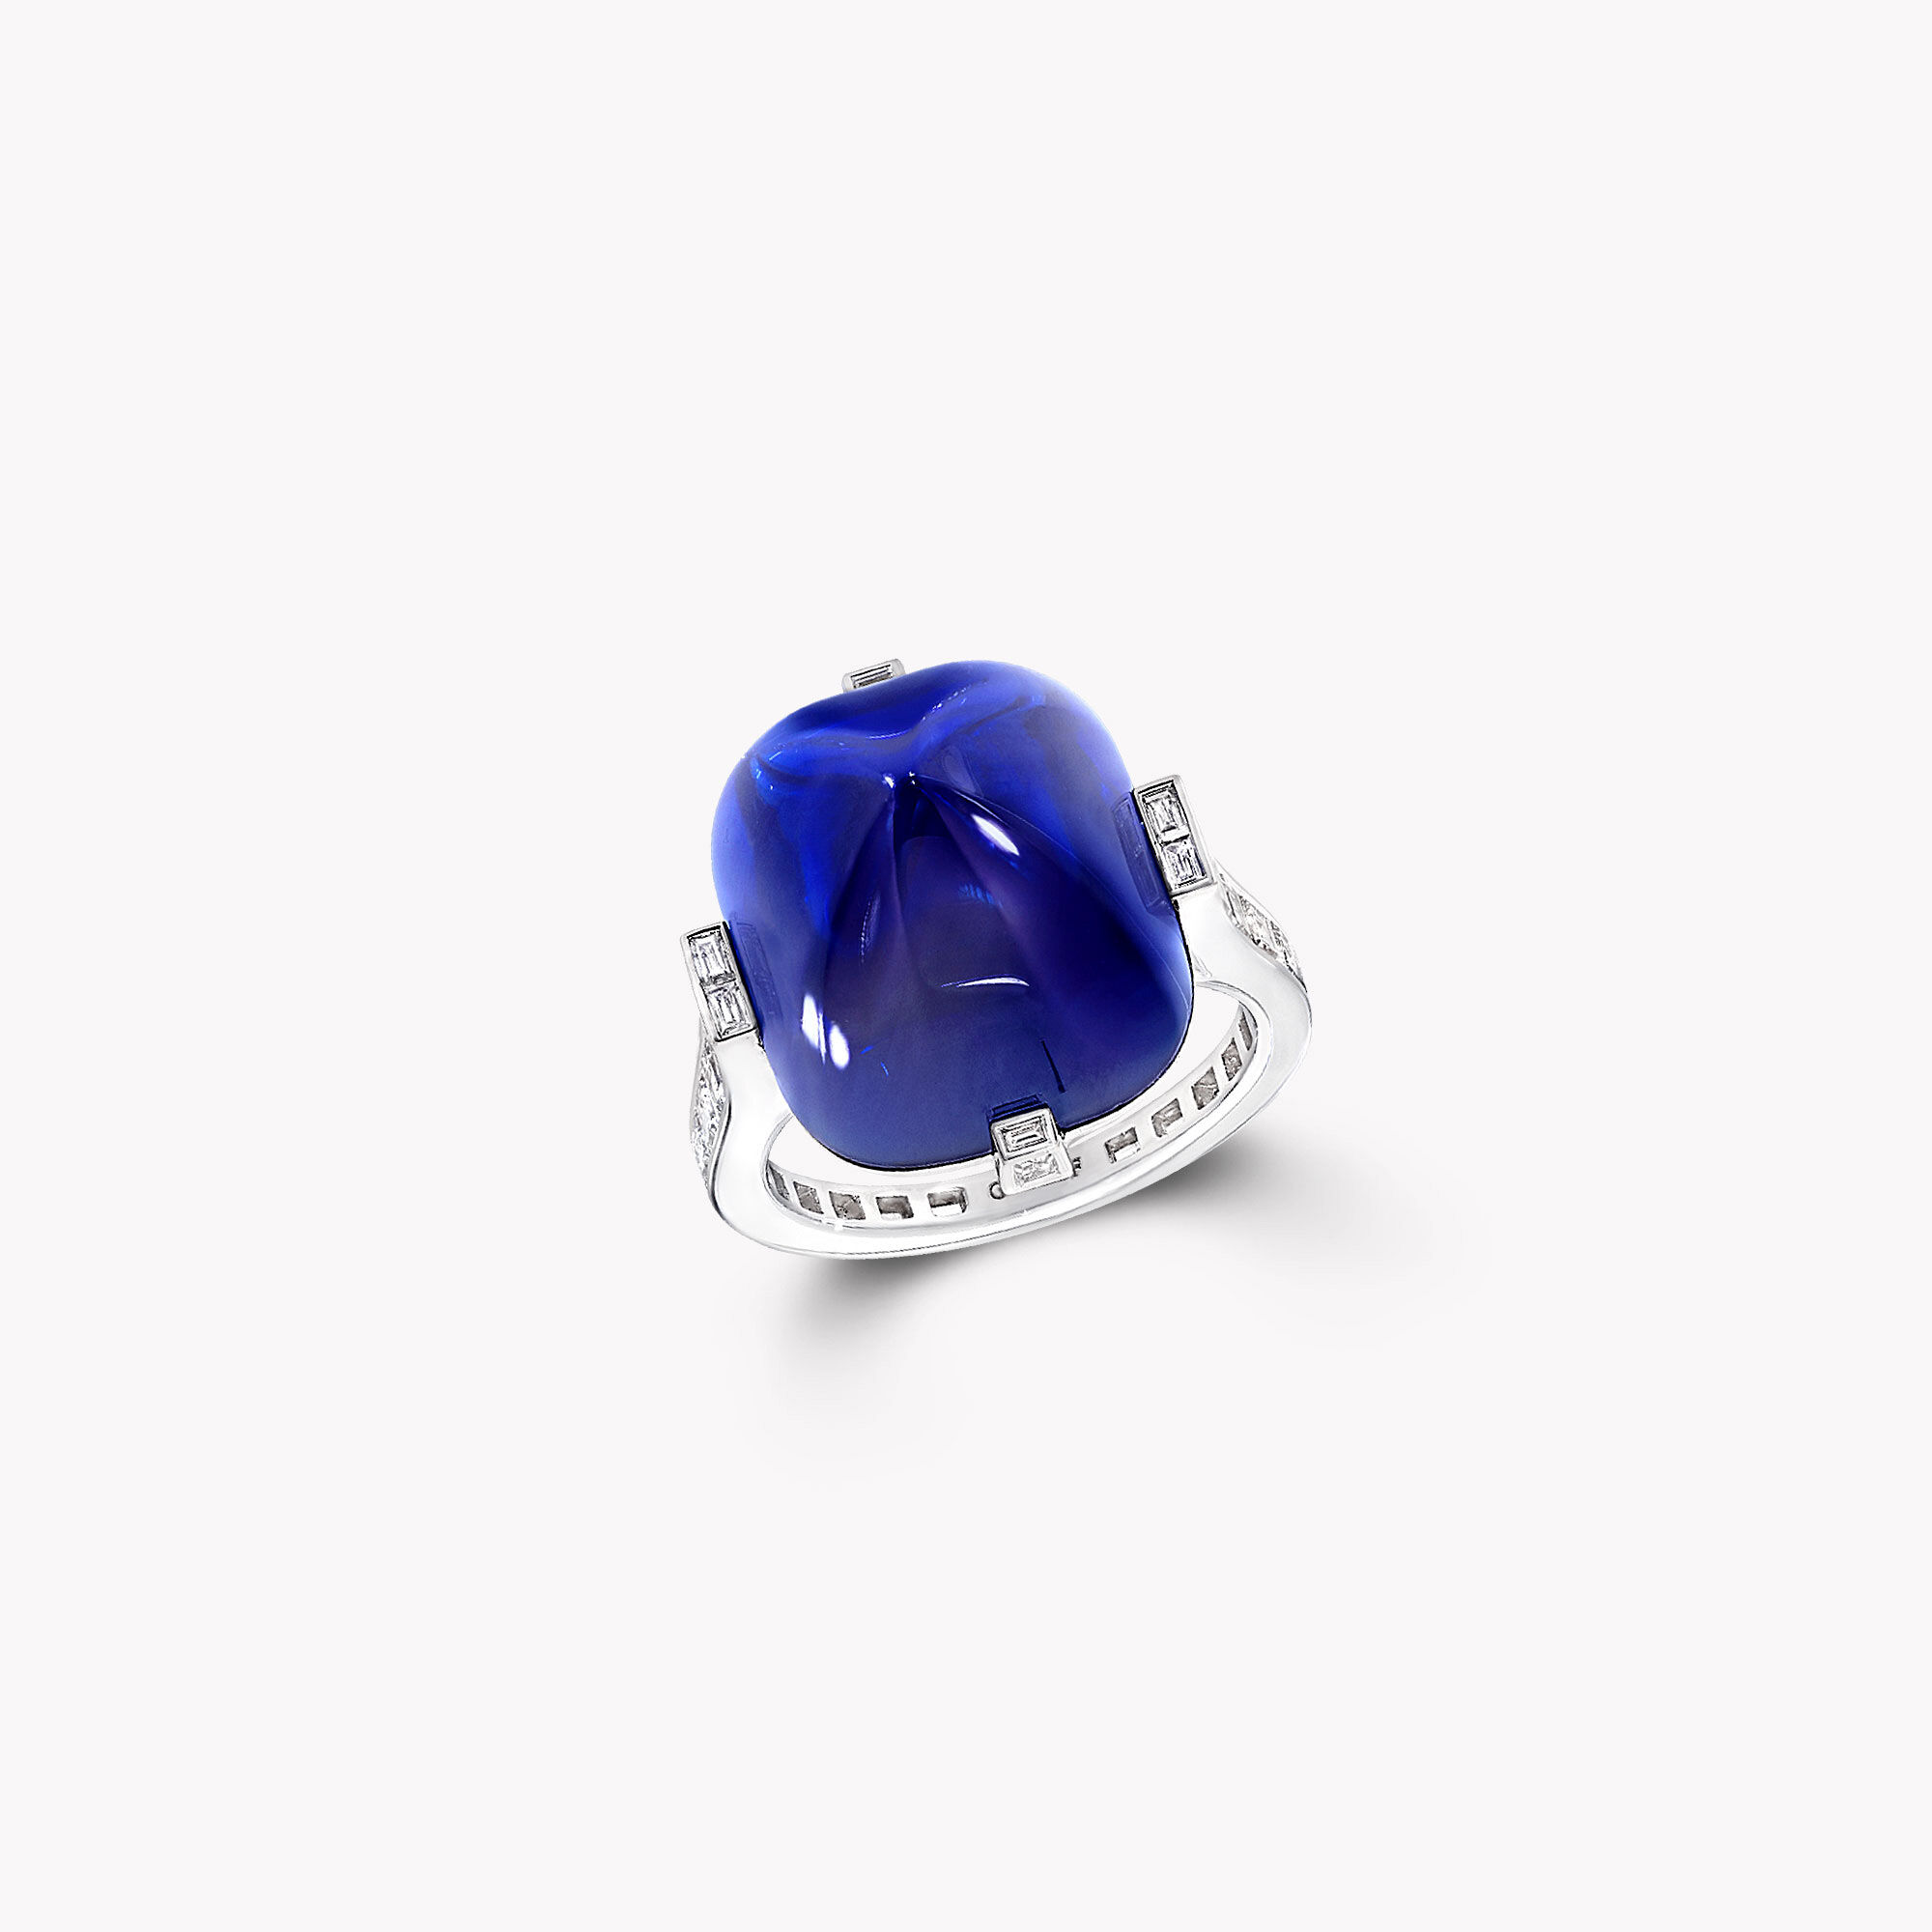 A Graff cabochon Kashmir sapphire and white diamond high jewellery ring